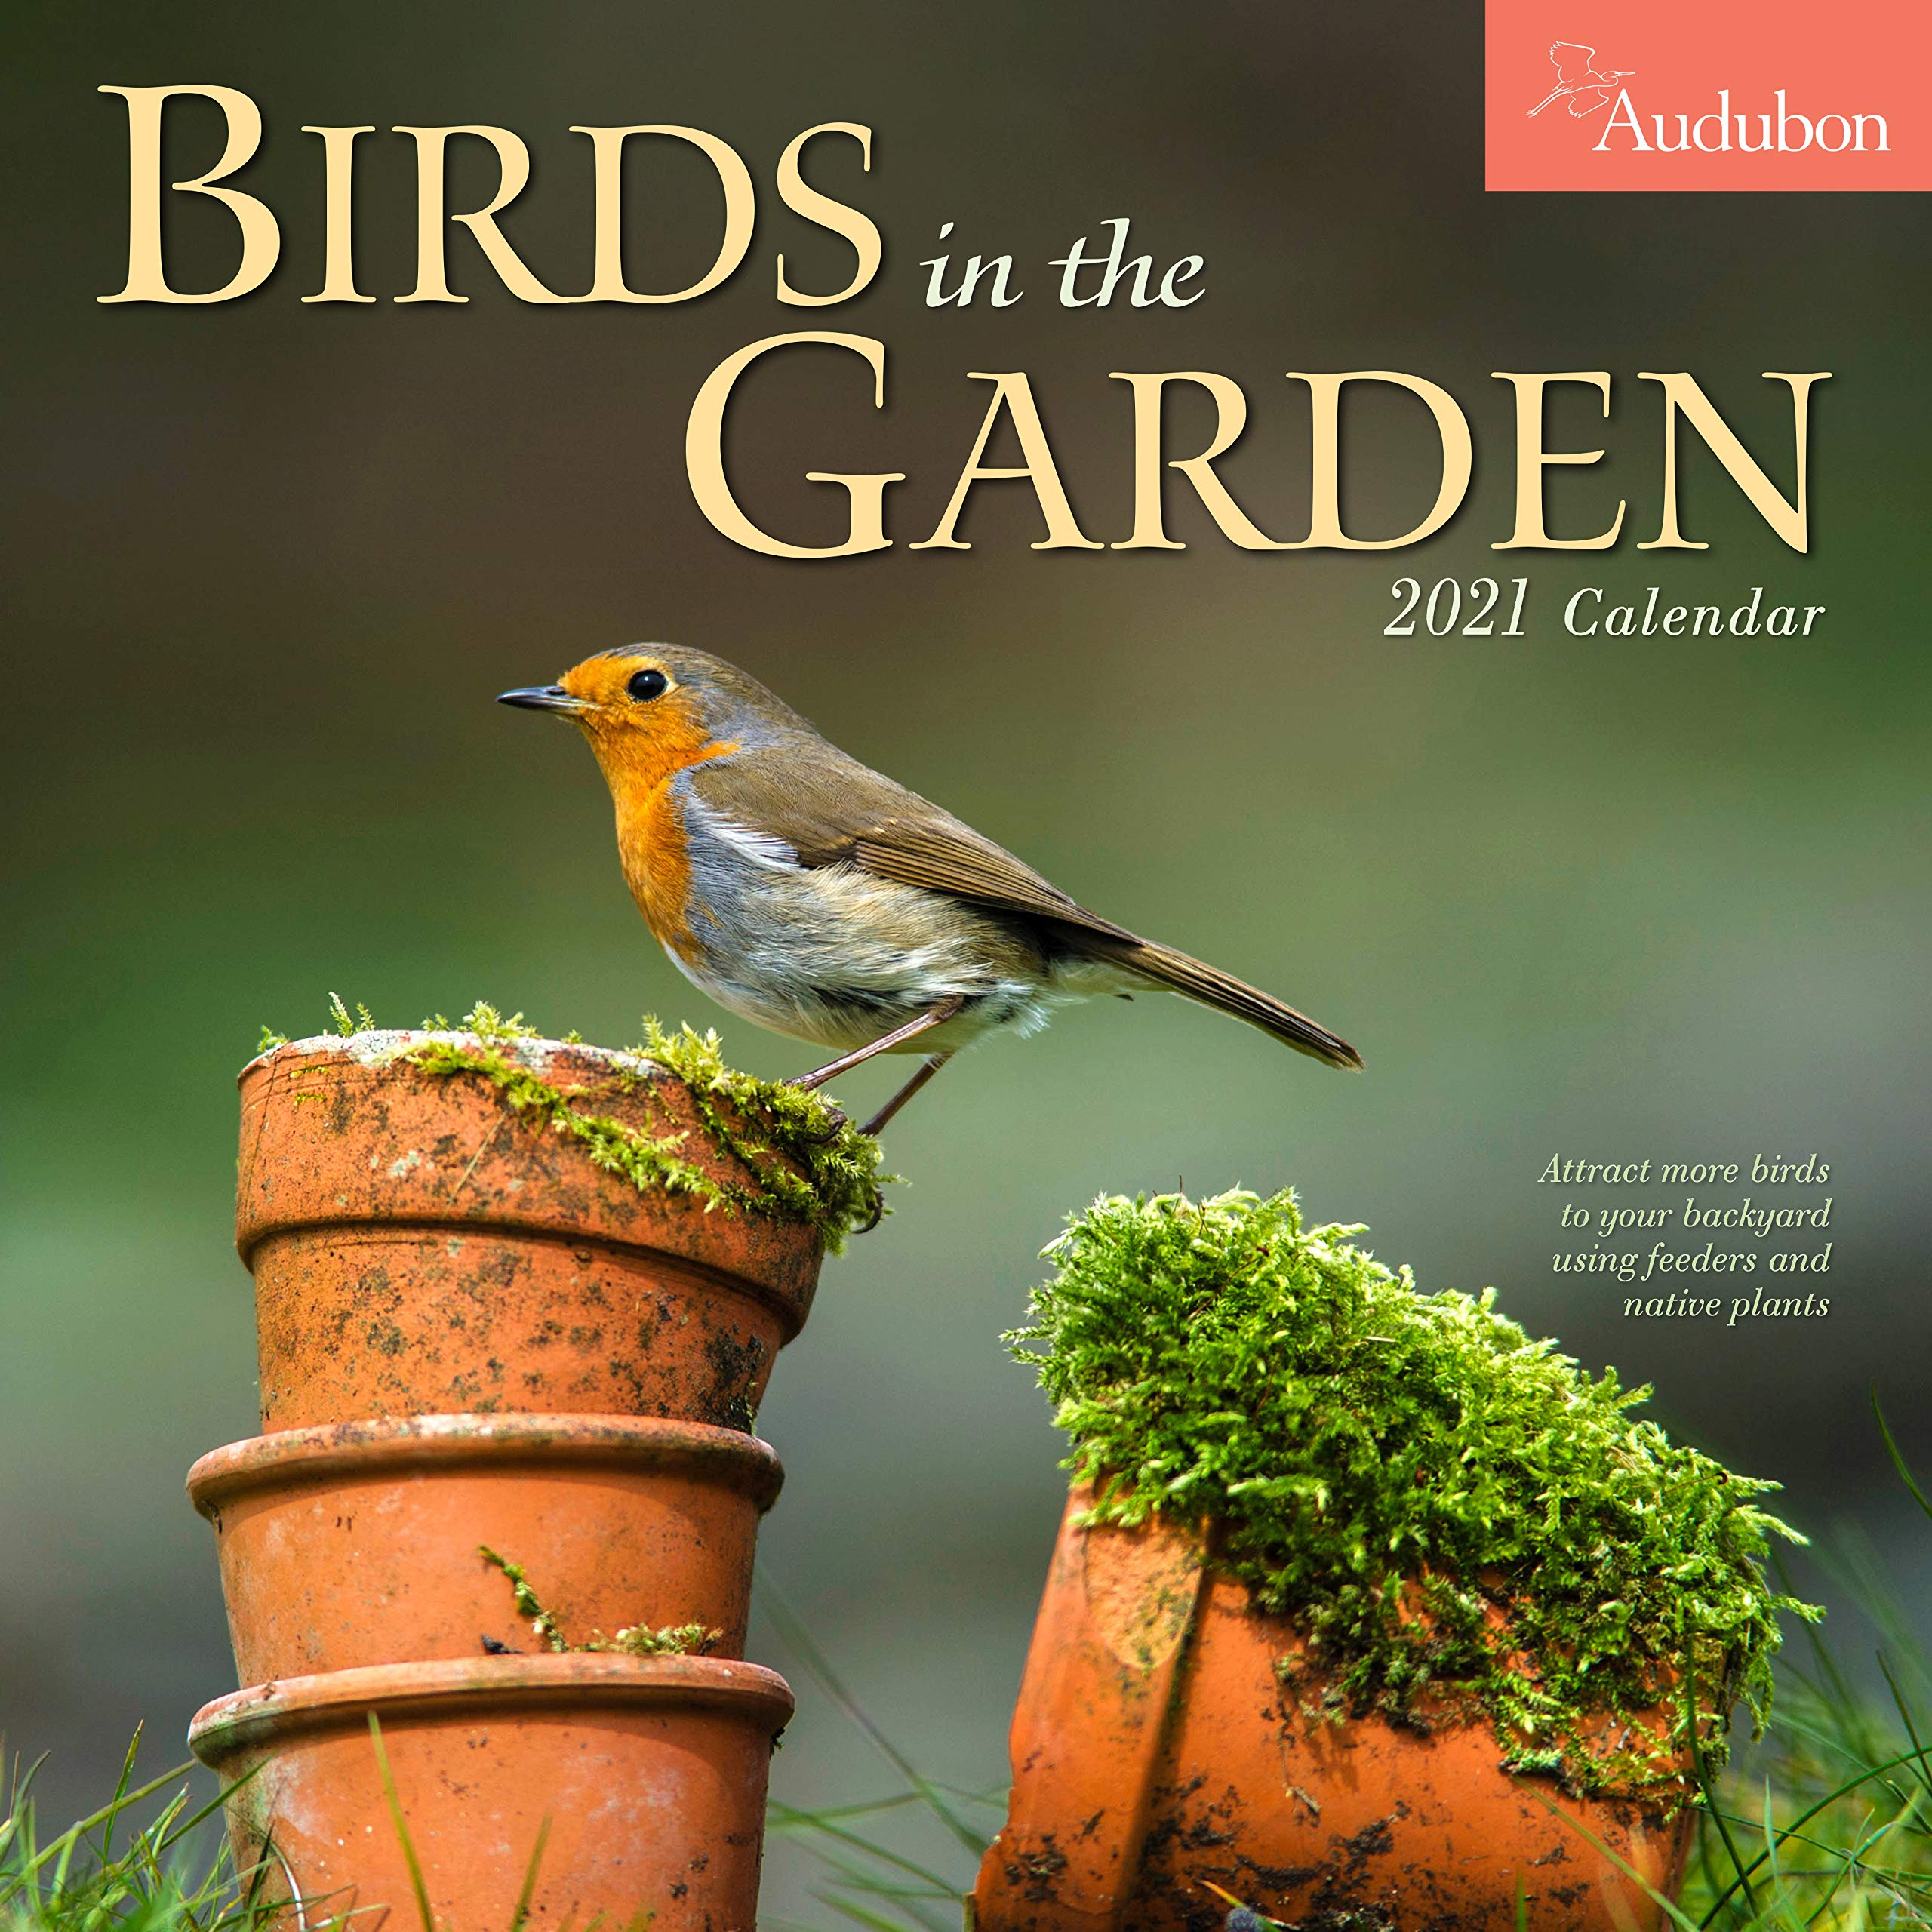 Amazon.com: Audubon Birds in the Garden Wall Calendar 2021